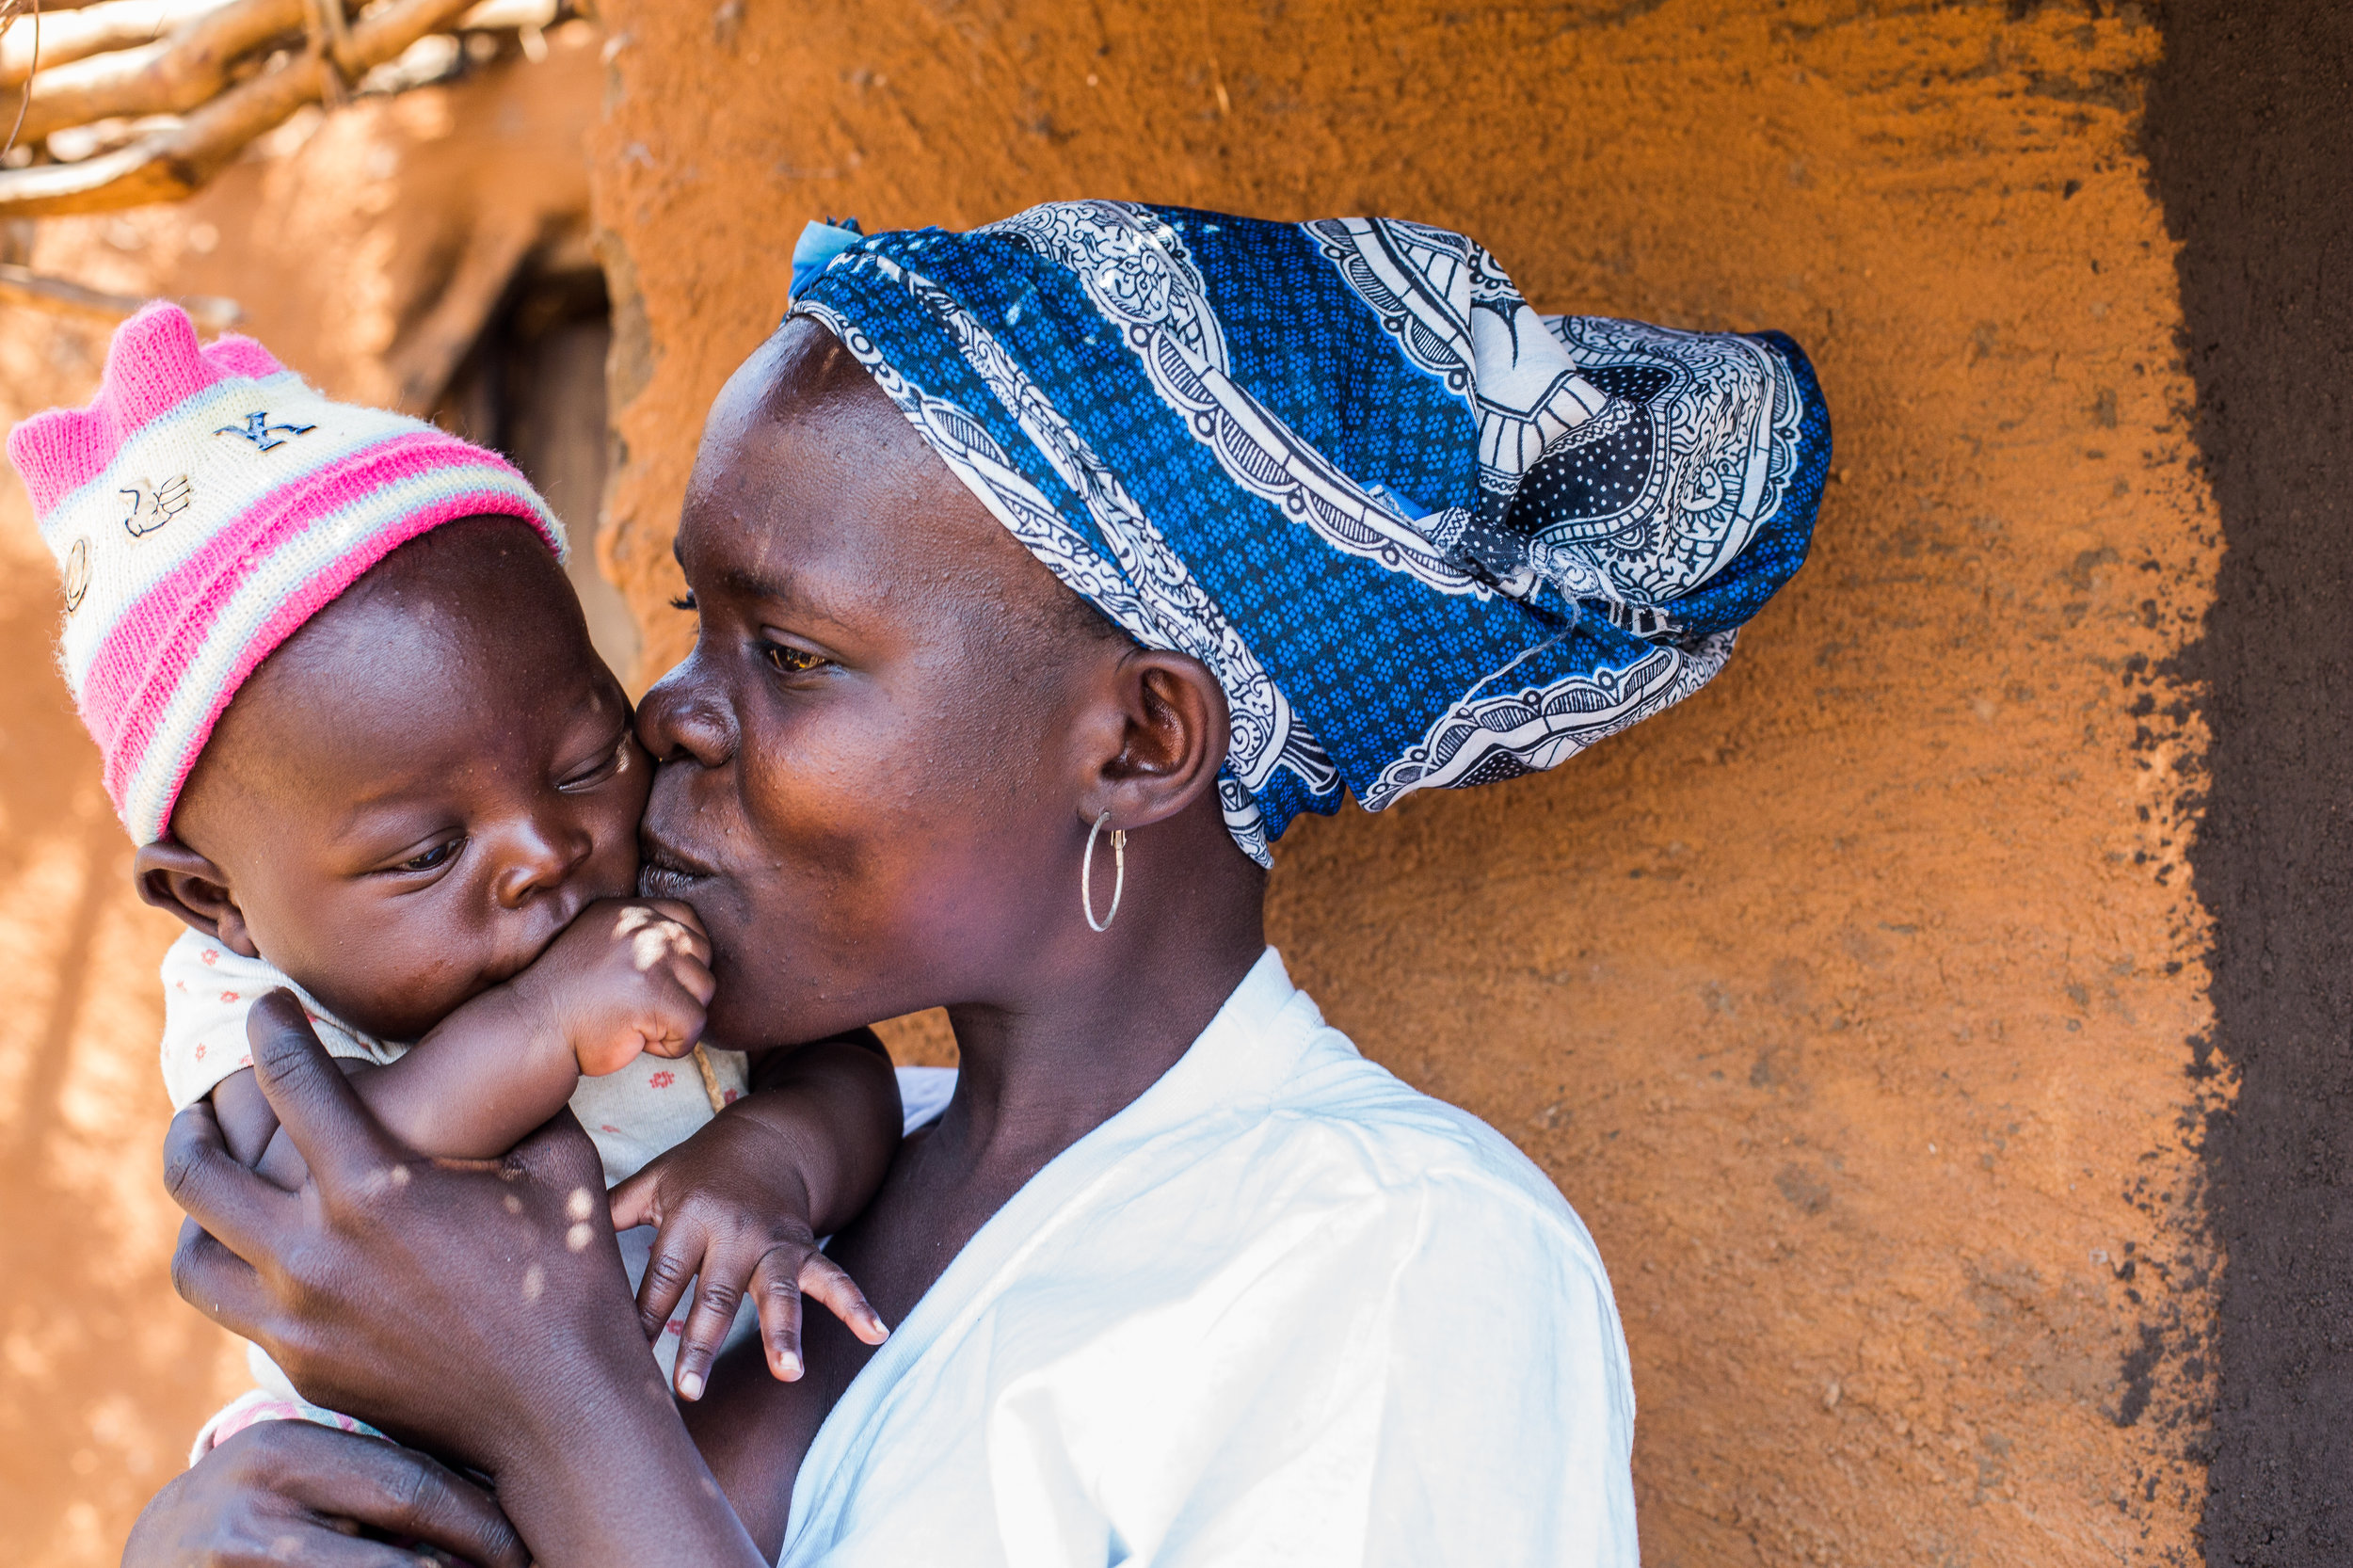 A mother kisses her baby daughter in Malawi (Photo: Corrie Wingate)